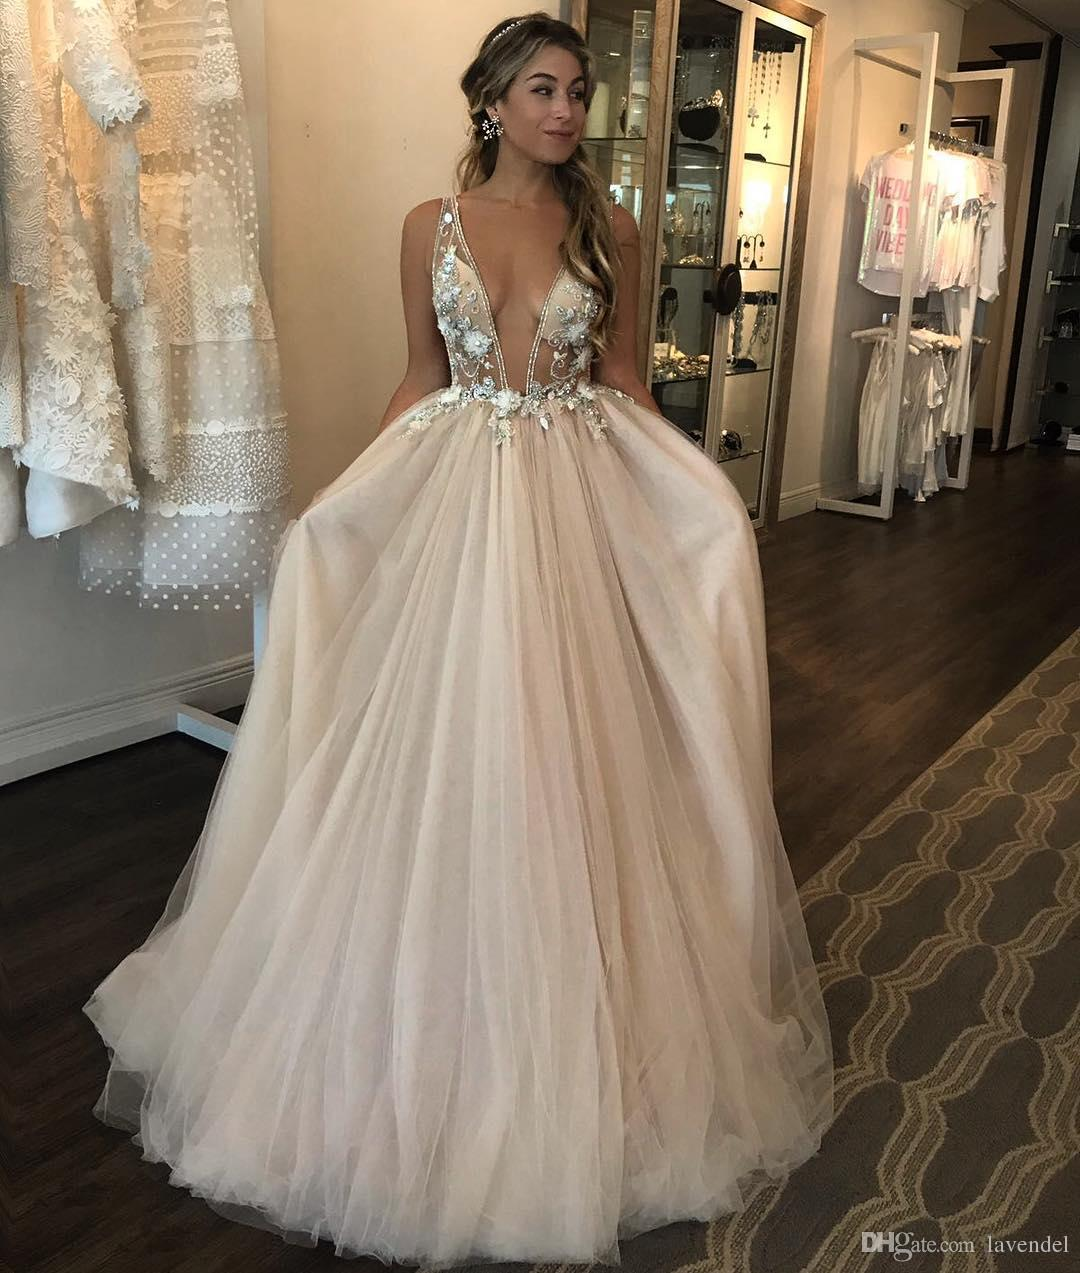 1d00f3e79c1 2018 New Deep V neck Puffy Tulle Wedding Dress 3D Floral Appliques Sheer  Bodice Bridal Gowns